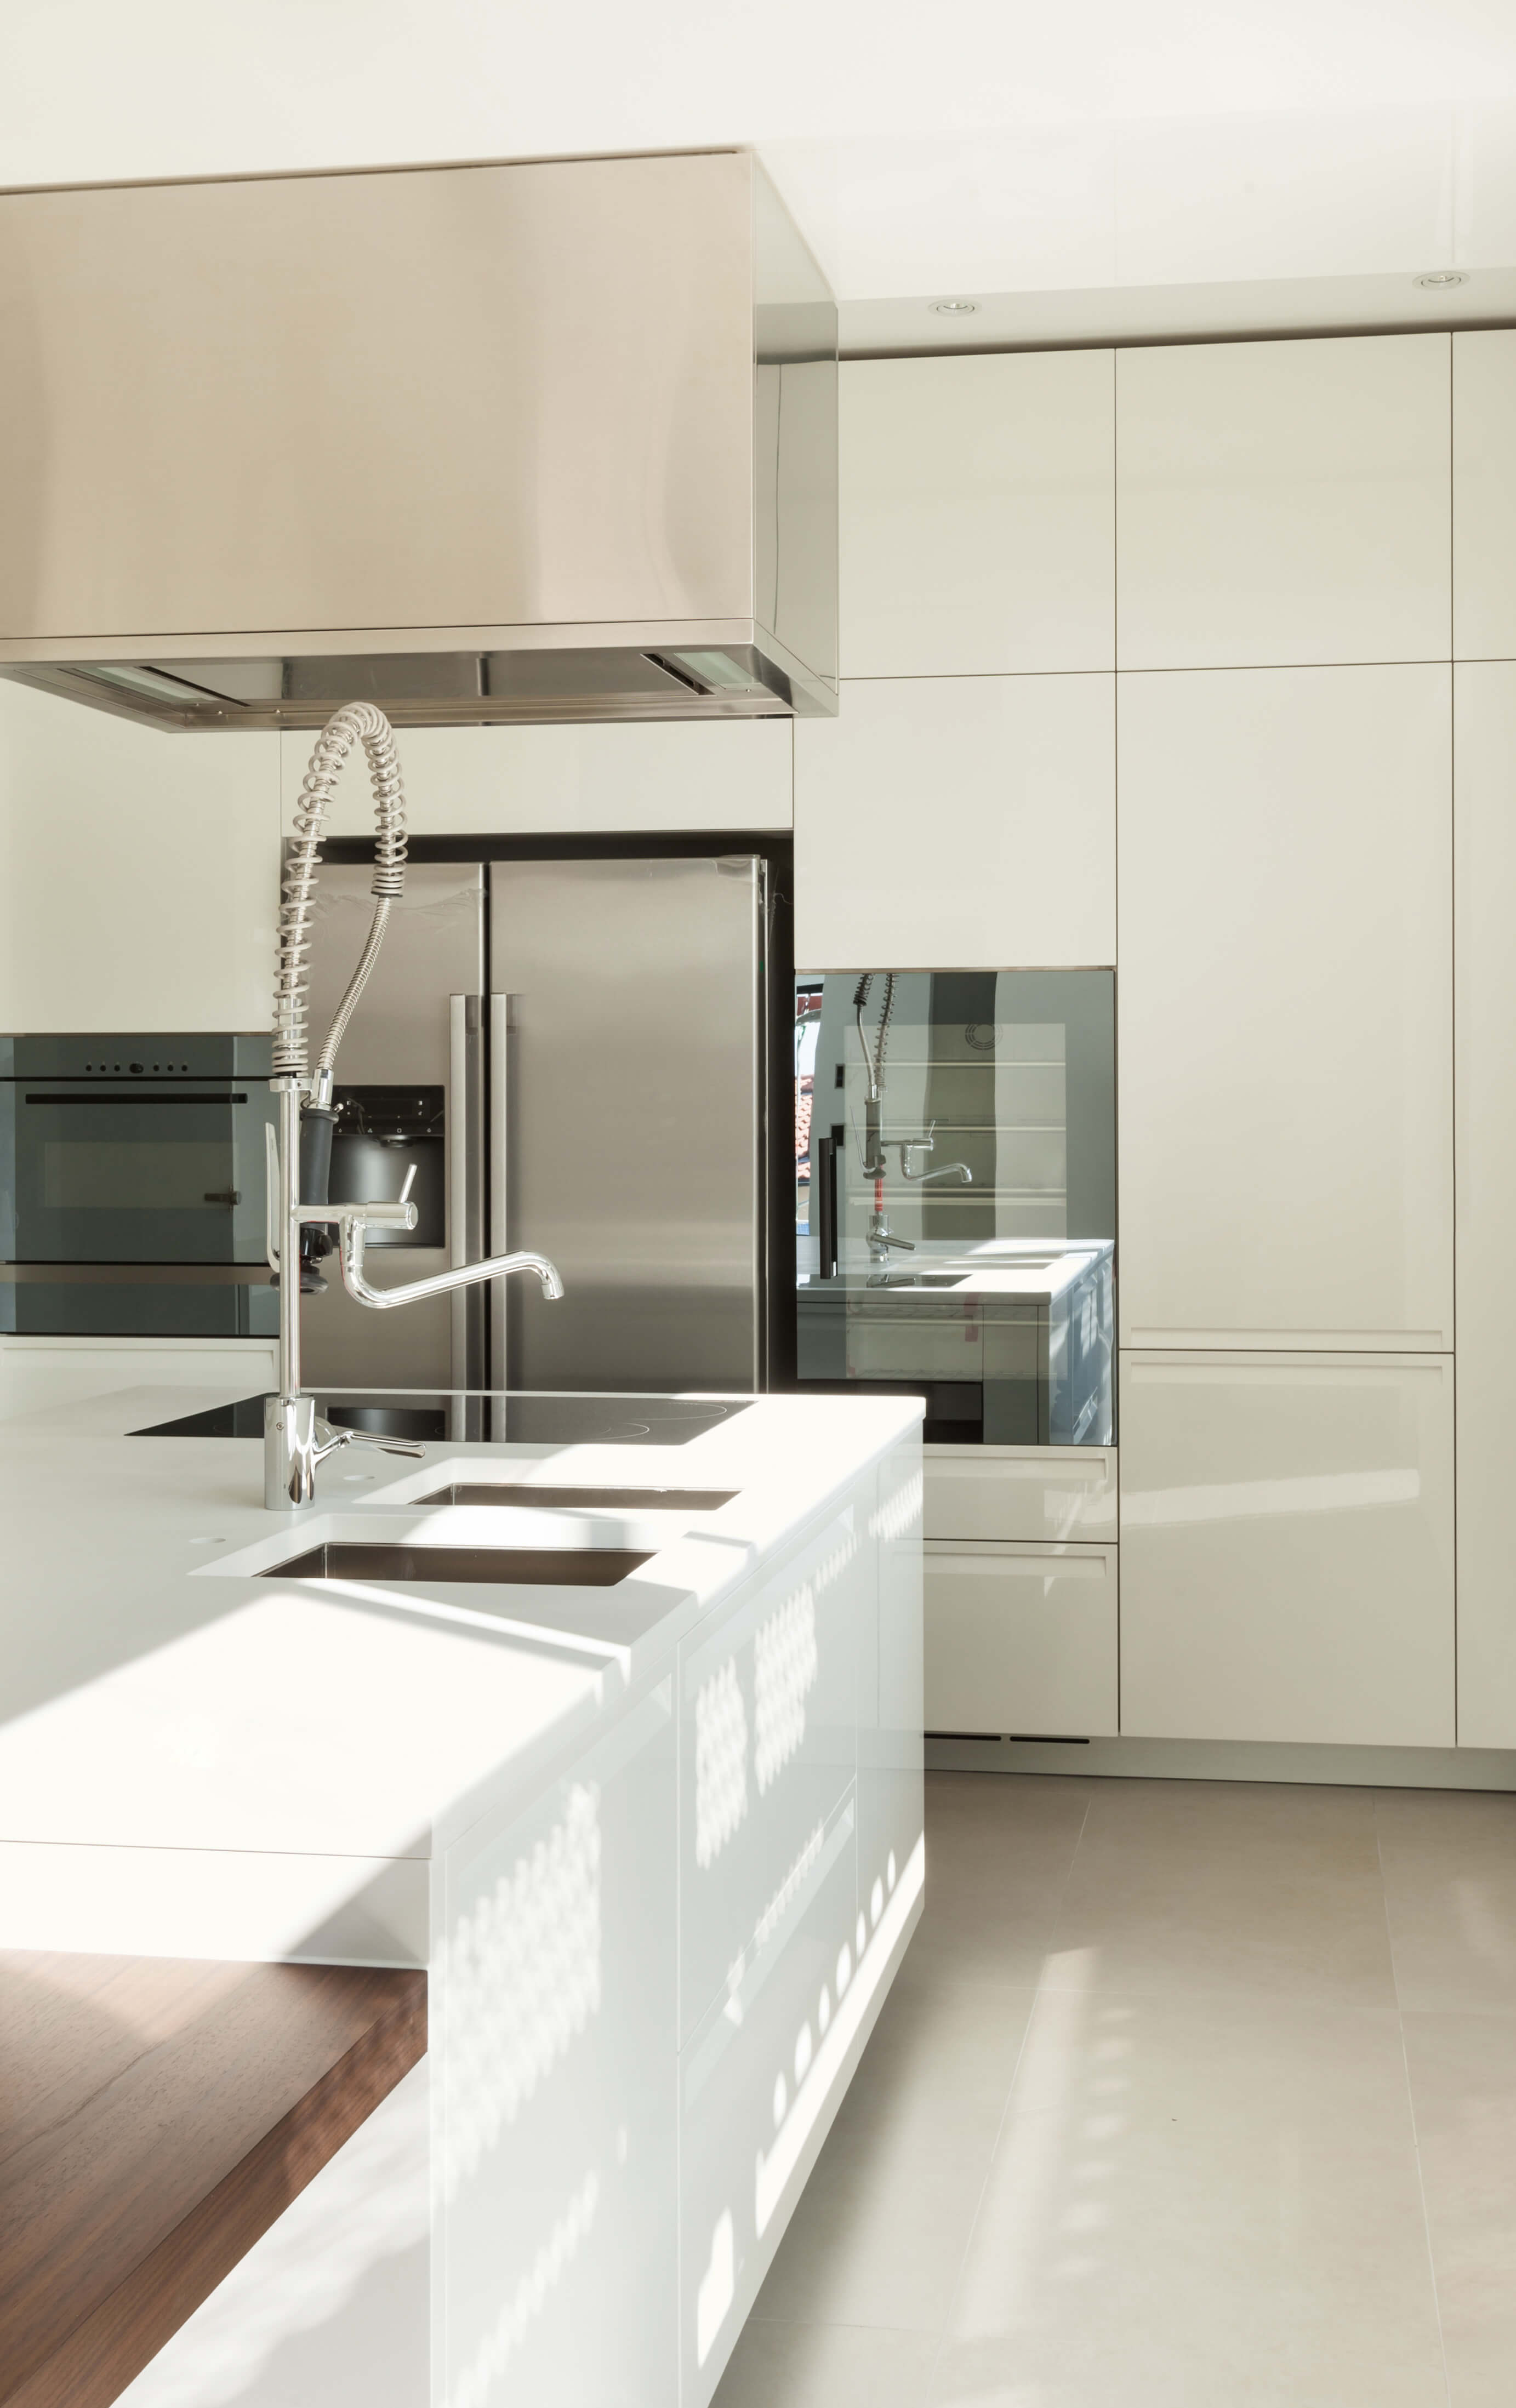 white kitchen designs pictures white kitchen table Ultra modern slick surfaces abound in this kitchen featuring glossy white cabinetry and countertops over